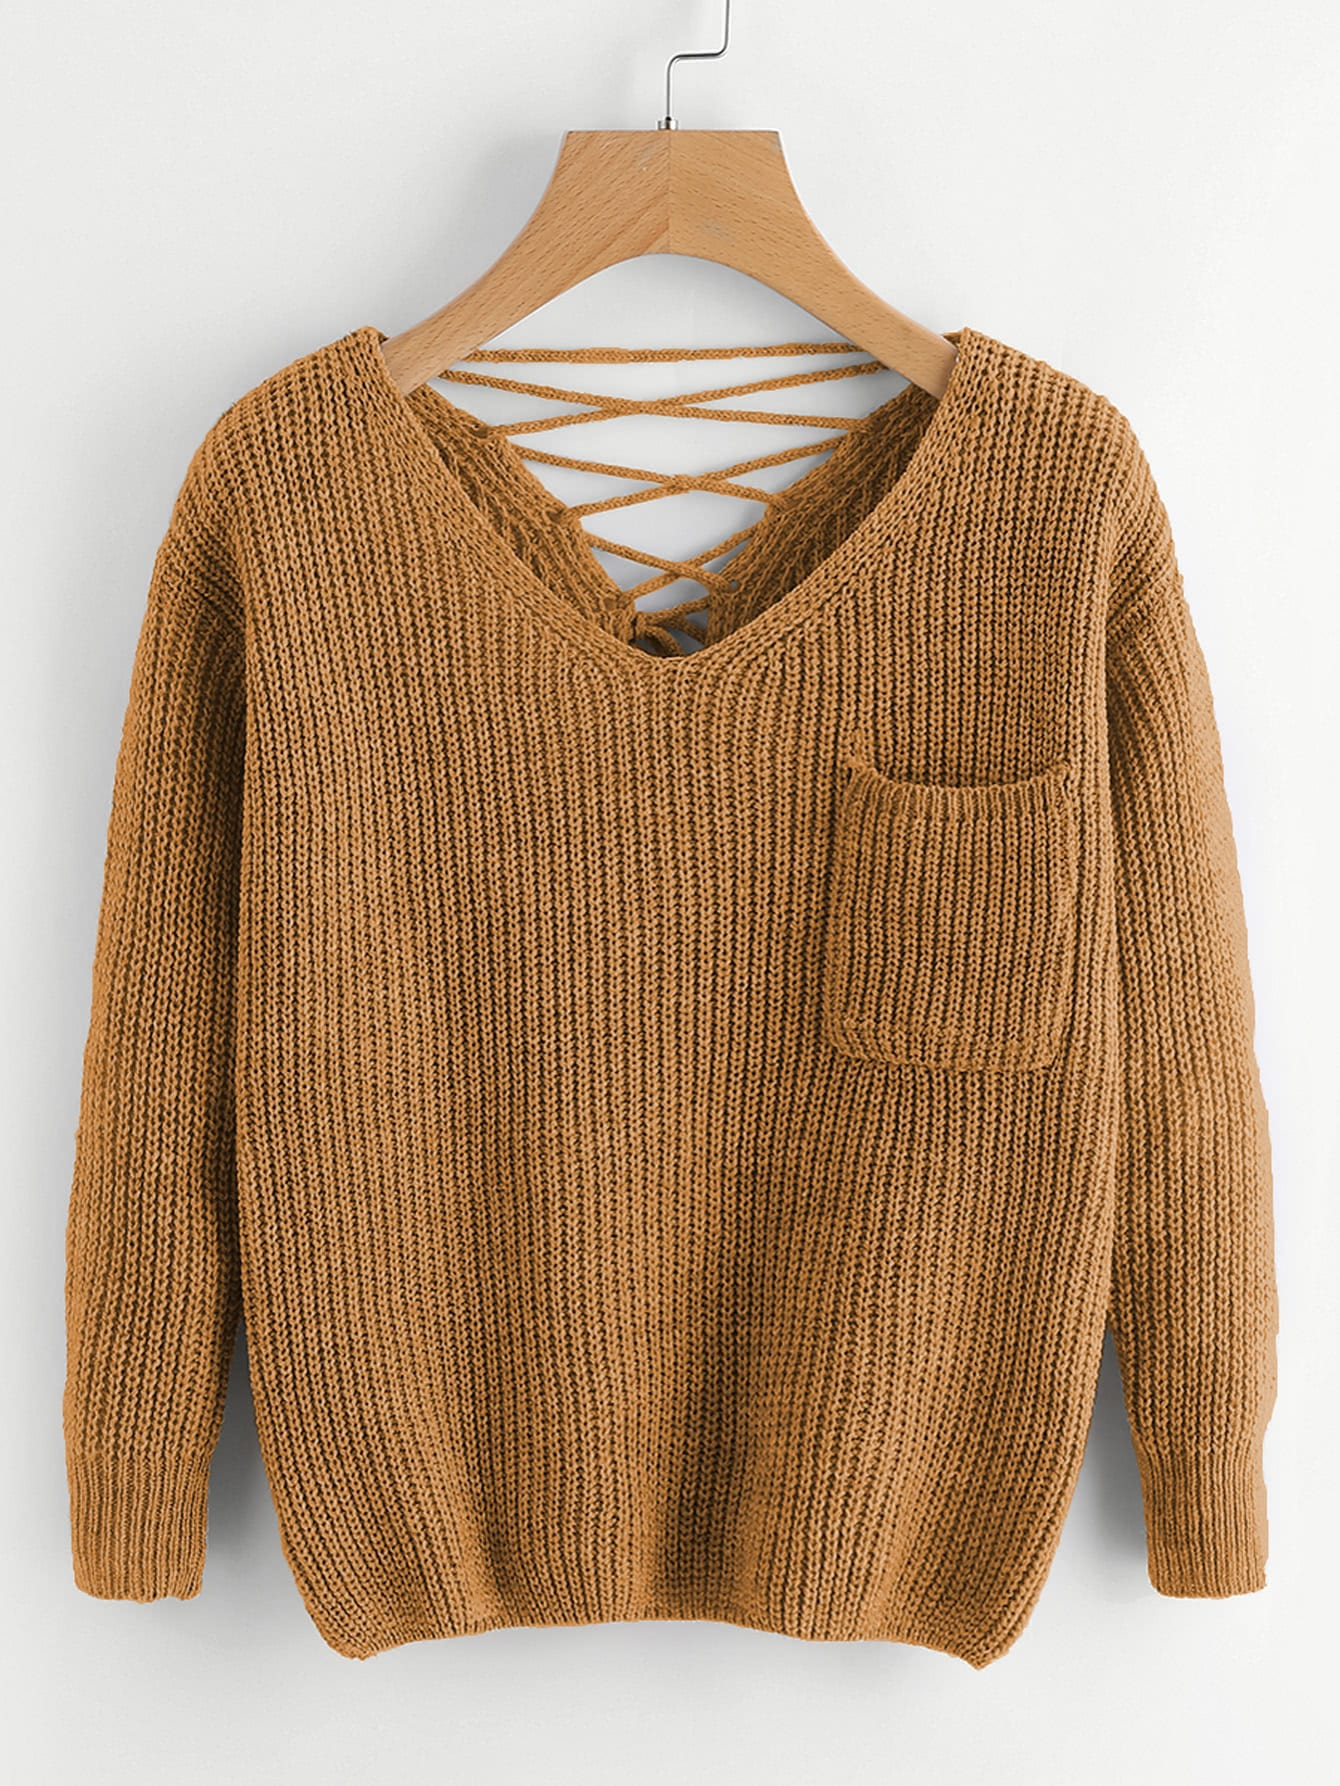 Double V Lace Up Back Chunky Knit Jumper sweater170914003